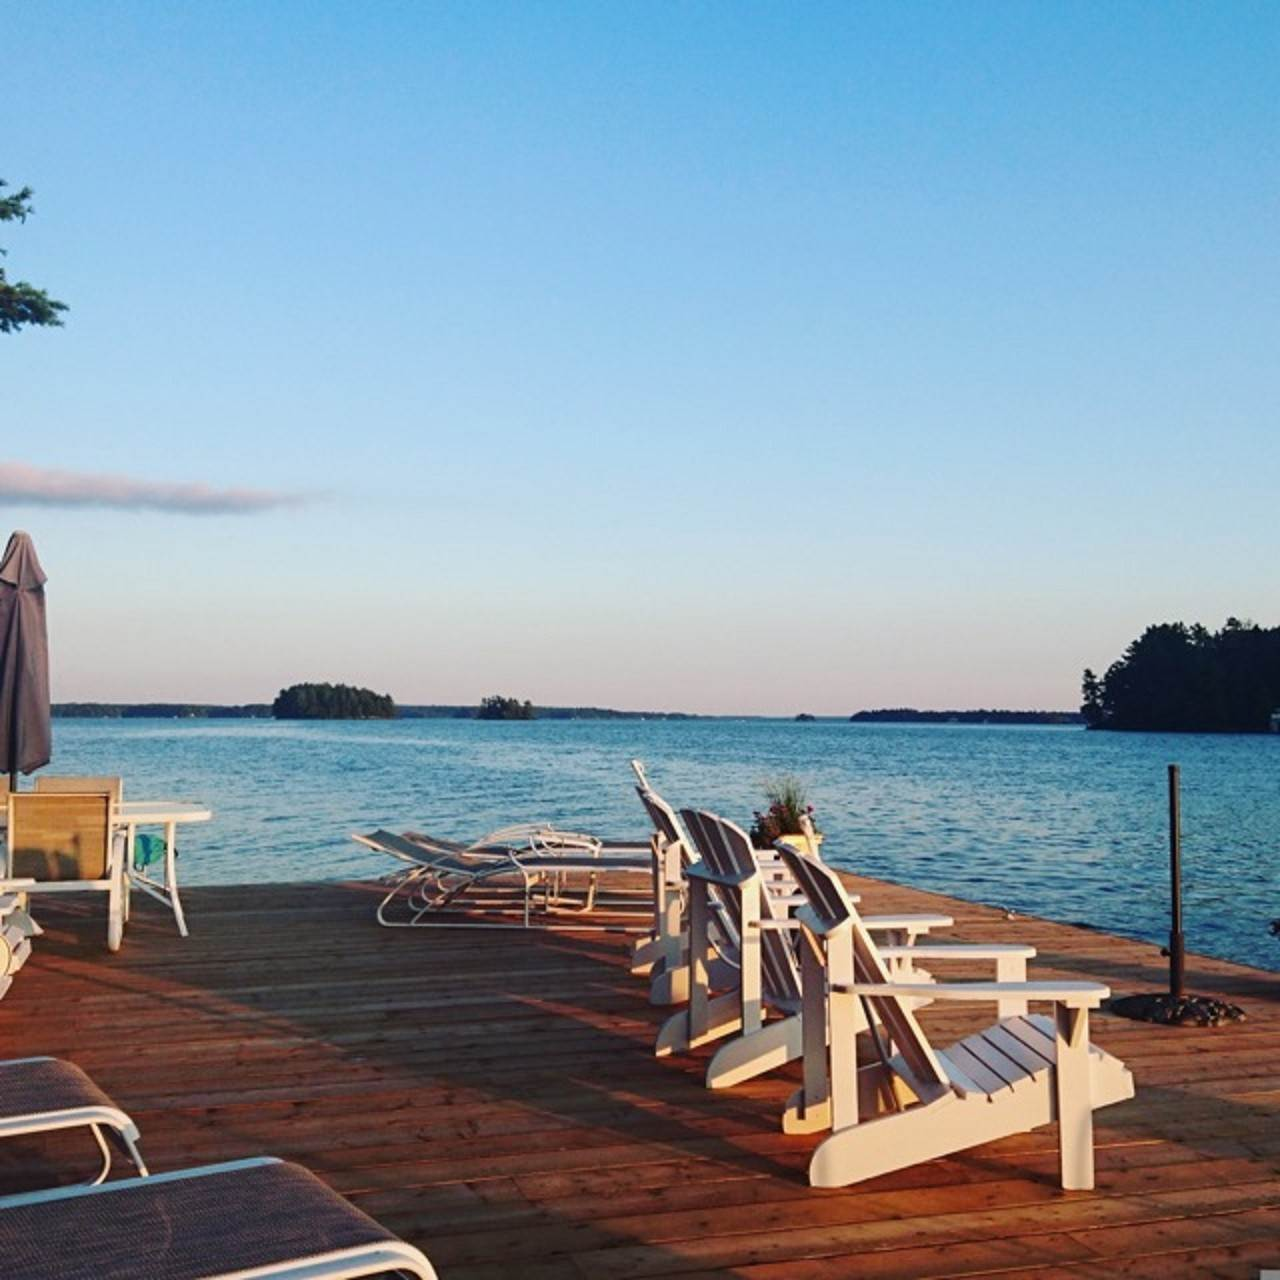 36. Private Island for Sale at 1 Marco ISLAND,Muskoka Lakes 1 Marco ISLAND Muskoka, Ontario,P0B1E0 Canada